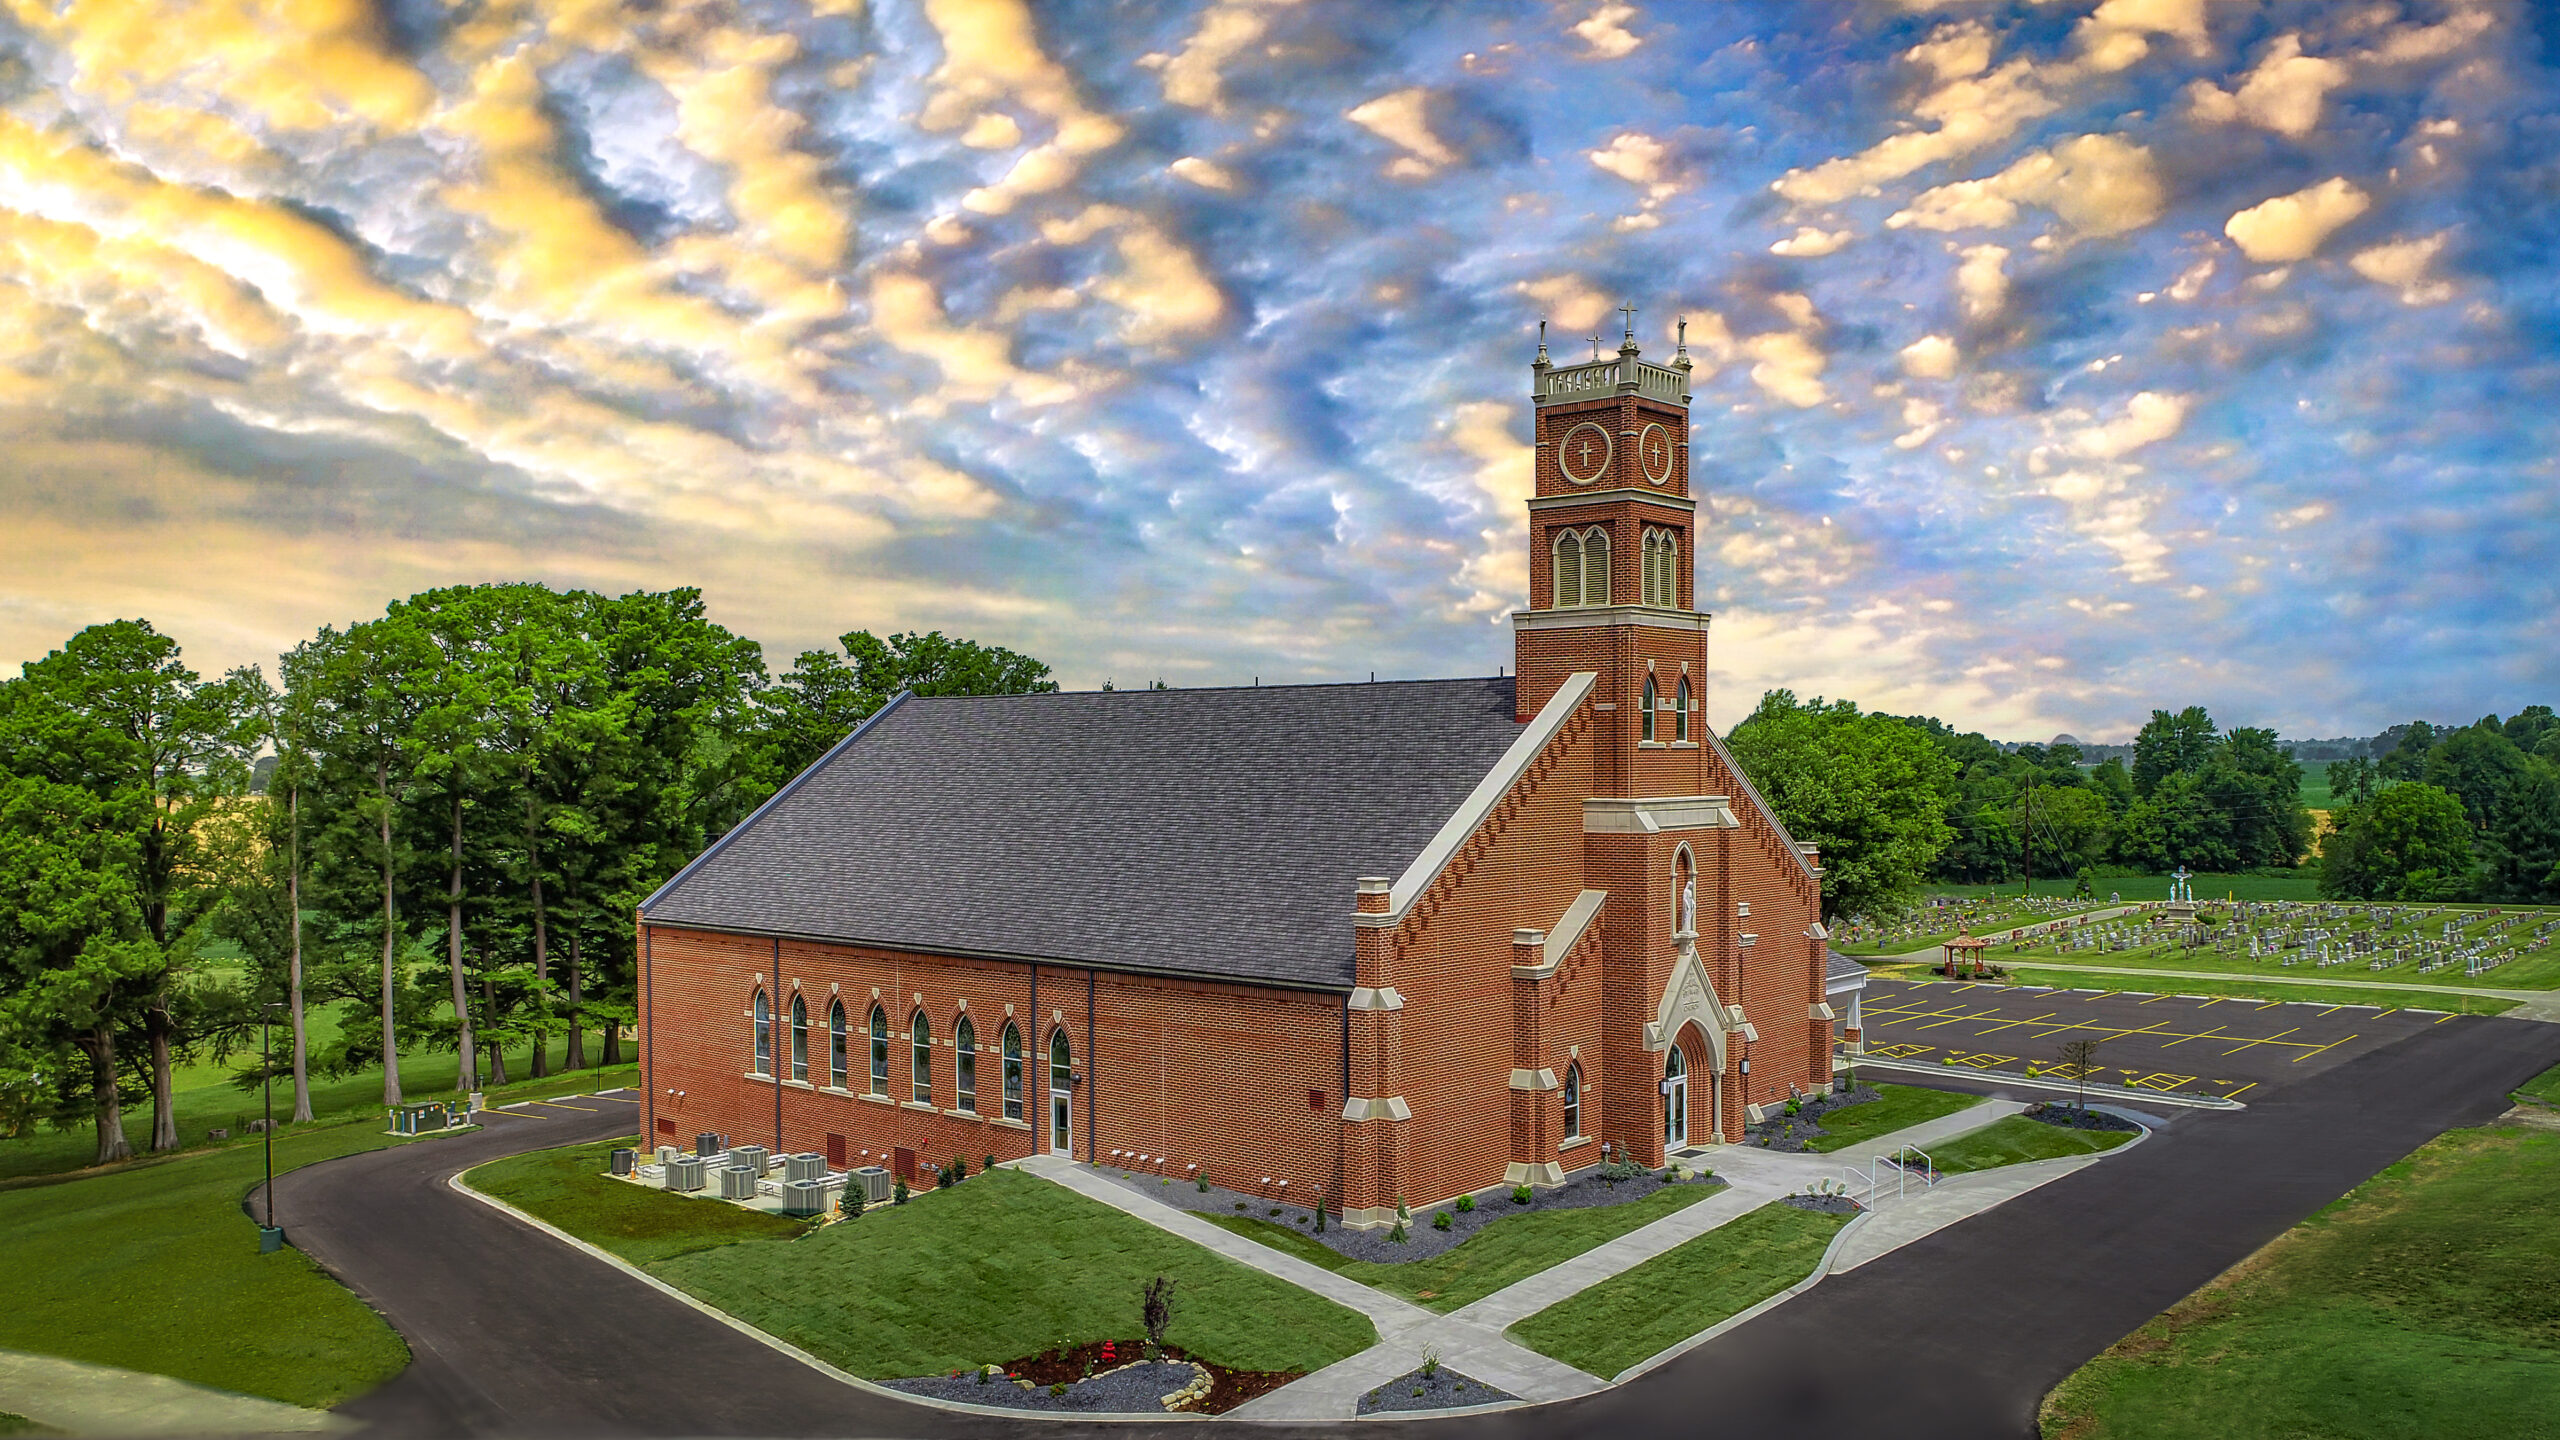 Following the June 28 Dedication Mass for the new St. Mary Church in Ireland, Brescher Filming & Photography, LLC, of Jasper flew its drone to get some aerial photos of the new church under the light of a setting sun. The Message gratefully acknowledges their help in covering the Dedication Mass, which we featured in our July 3 issue. Photo by Brescher Filming & Photography, LLC, special to The Message